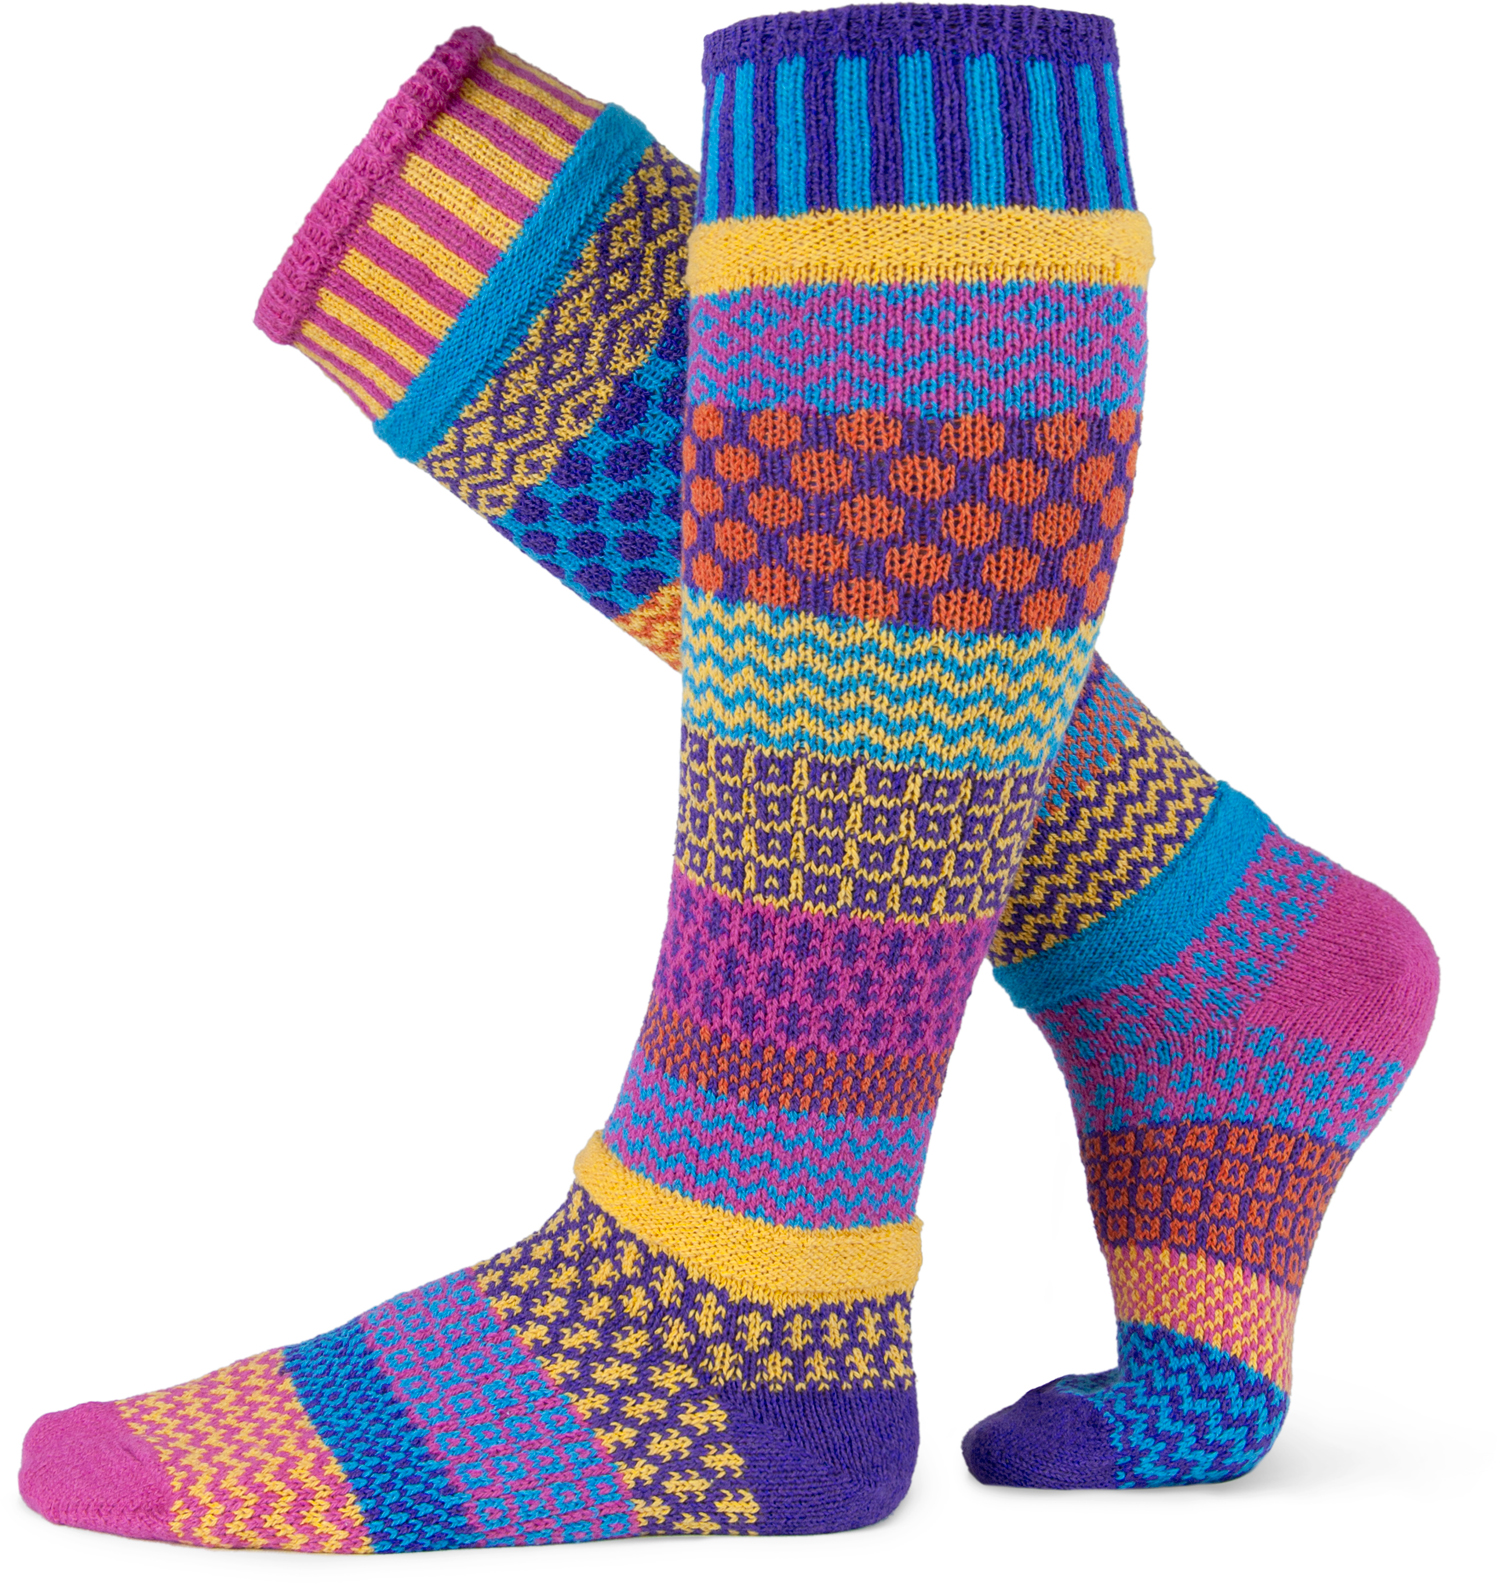 American Made Eco-Friendly Socks from Solmate Socks